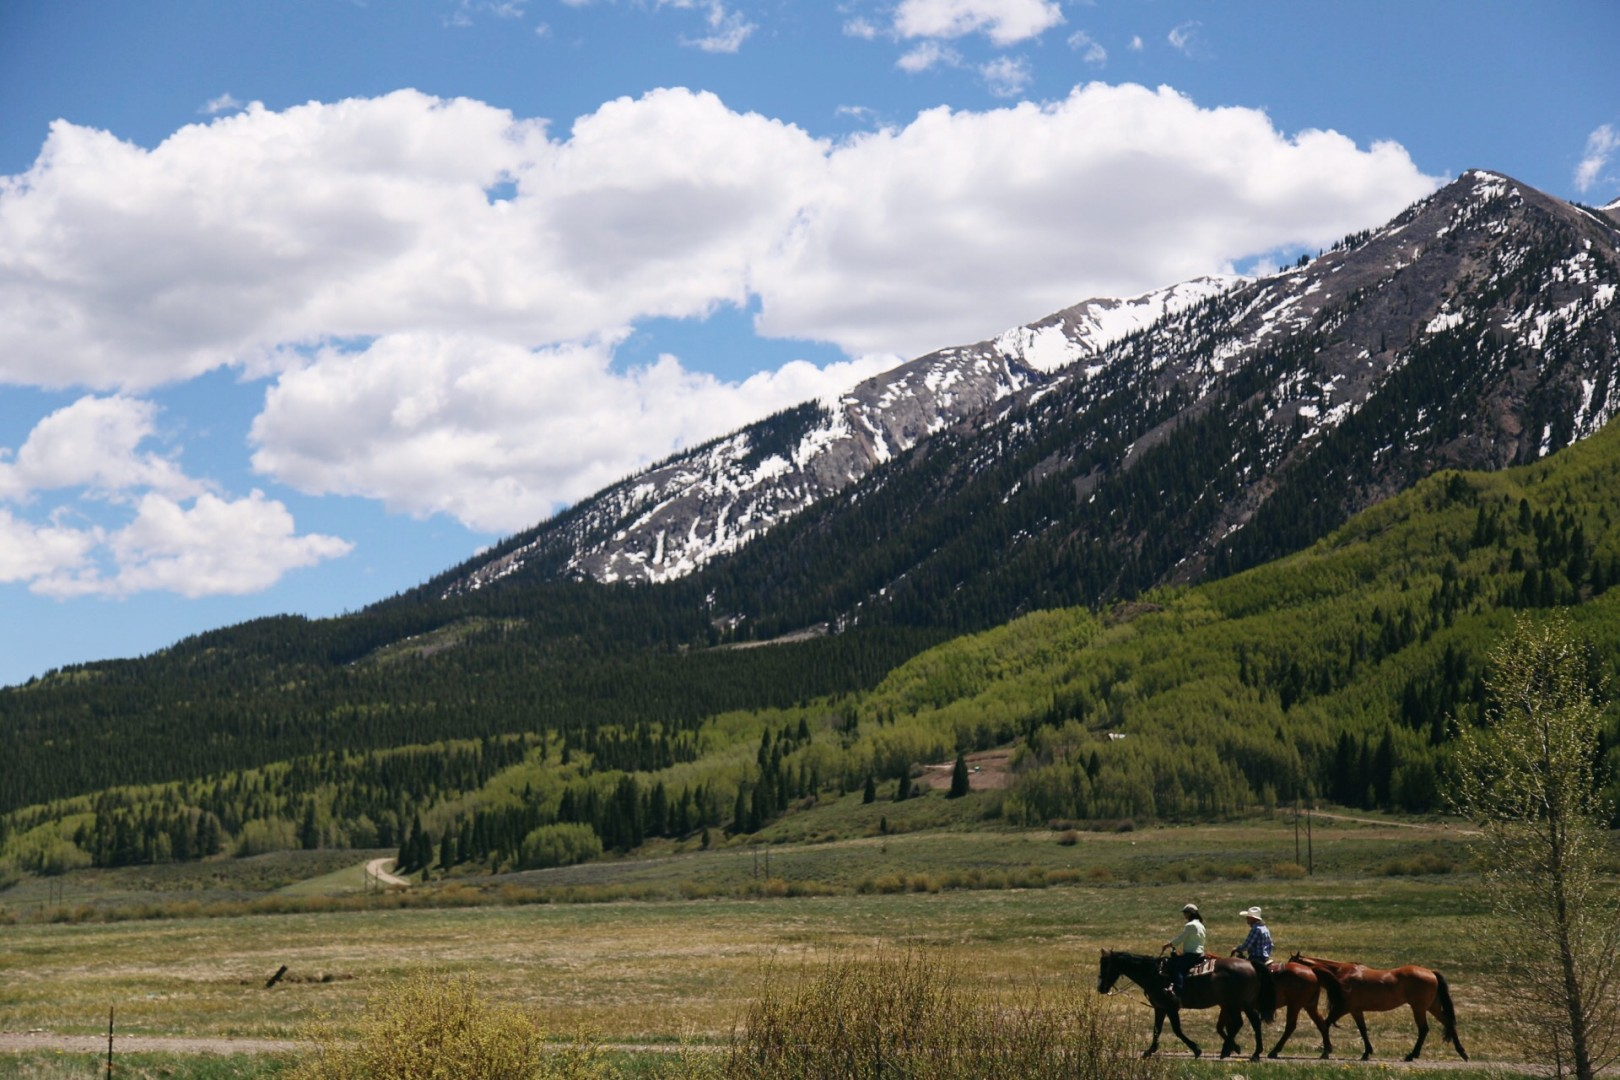 An incredible view of the country side in Crested Butte, CO. Andrea Watson | Clarion